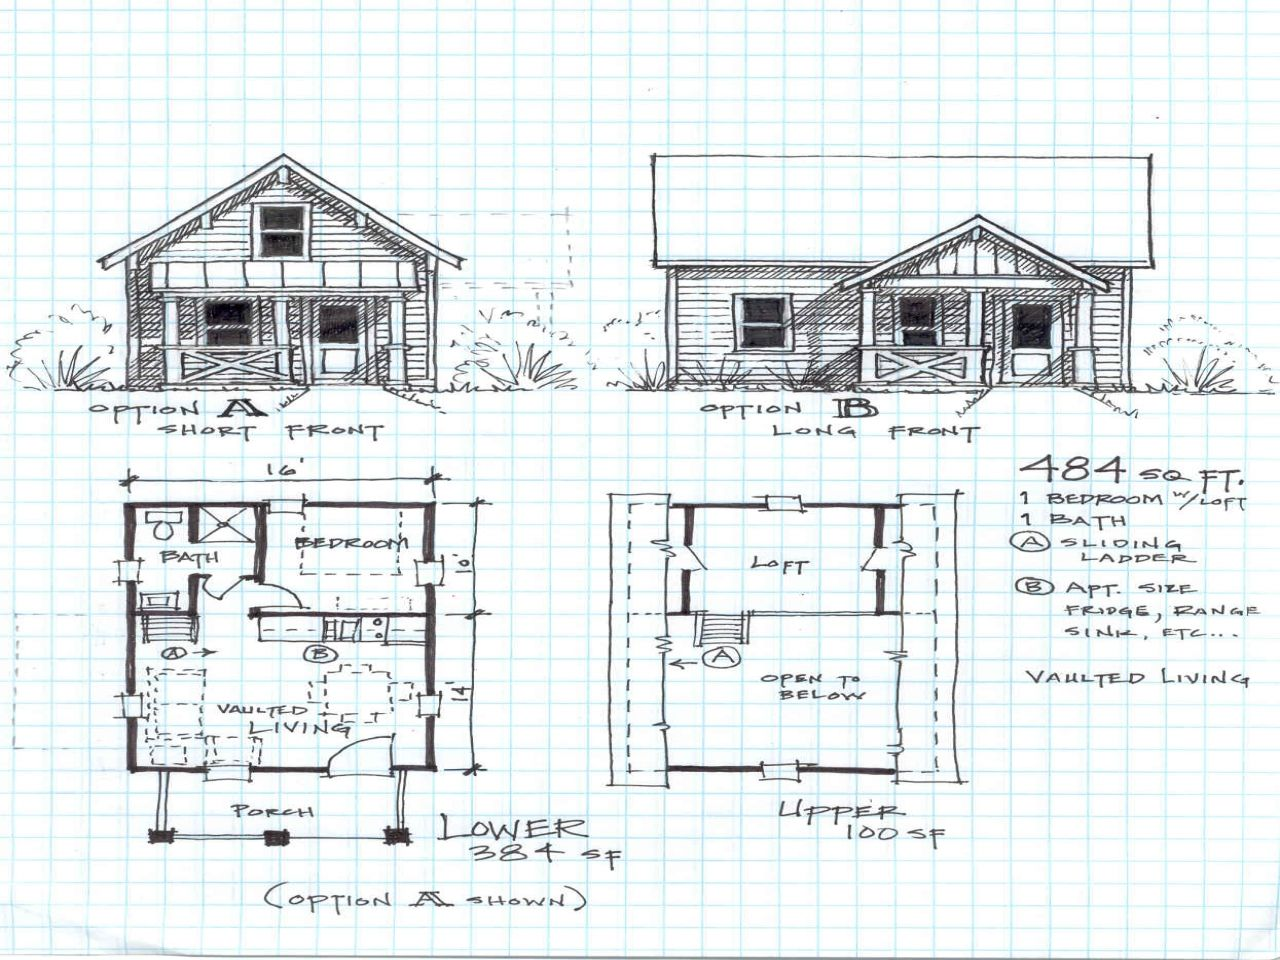 Clever Design Cottage Camp Plans 9 Lay Out Plan Of Houses On Home Small Cabin Plans Small House Floor Plans Loft Floor Plans